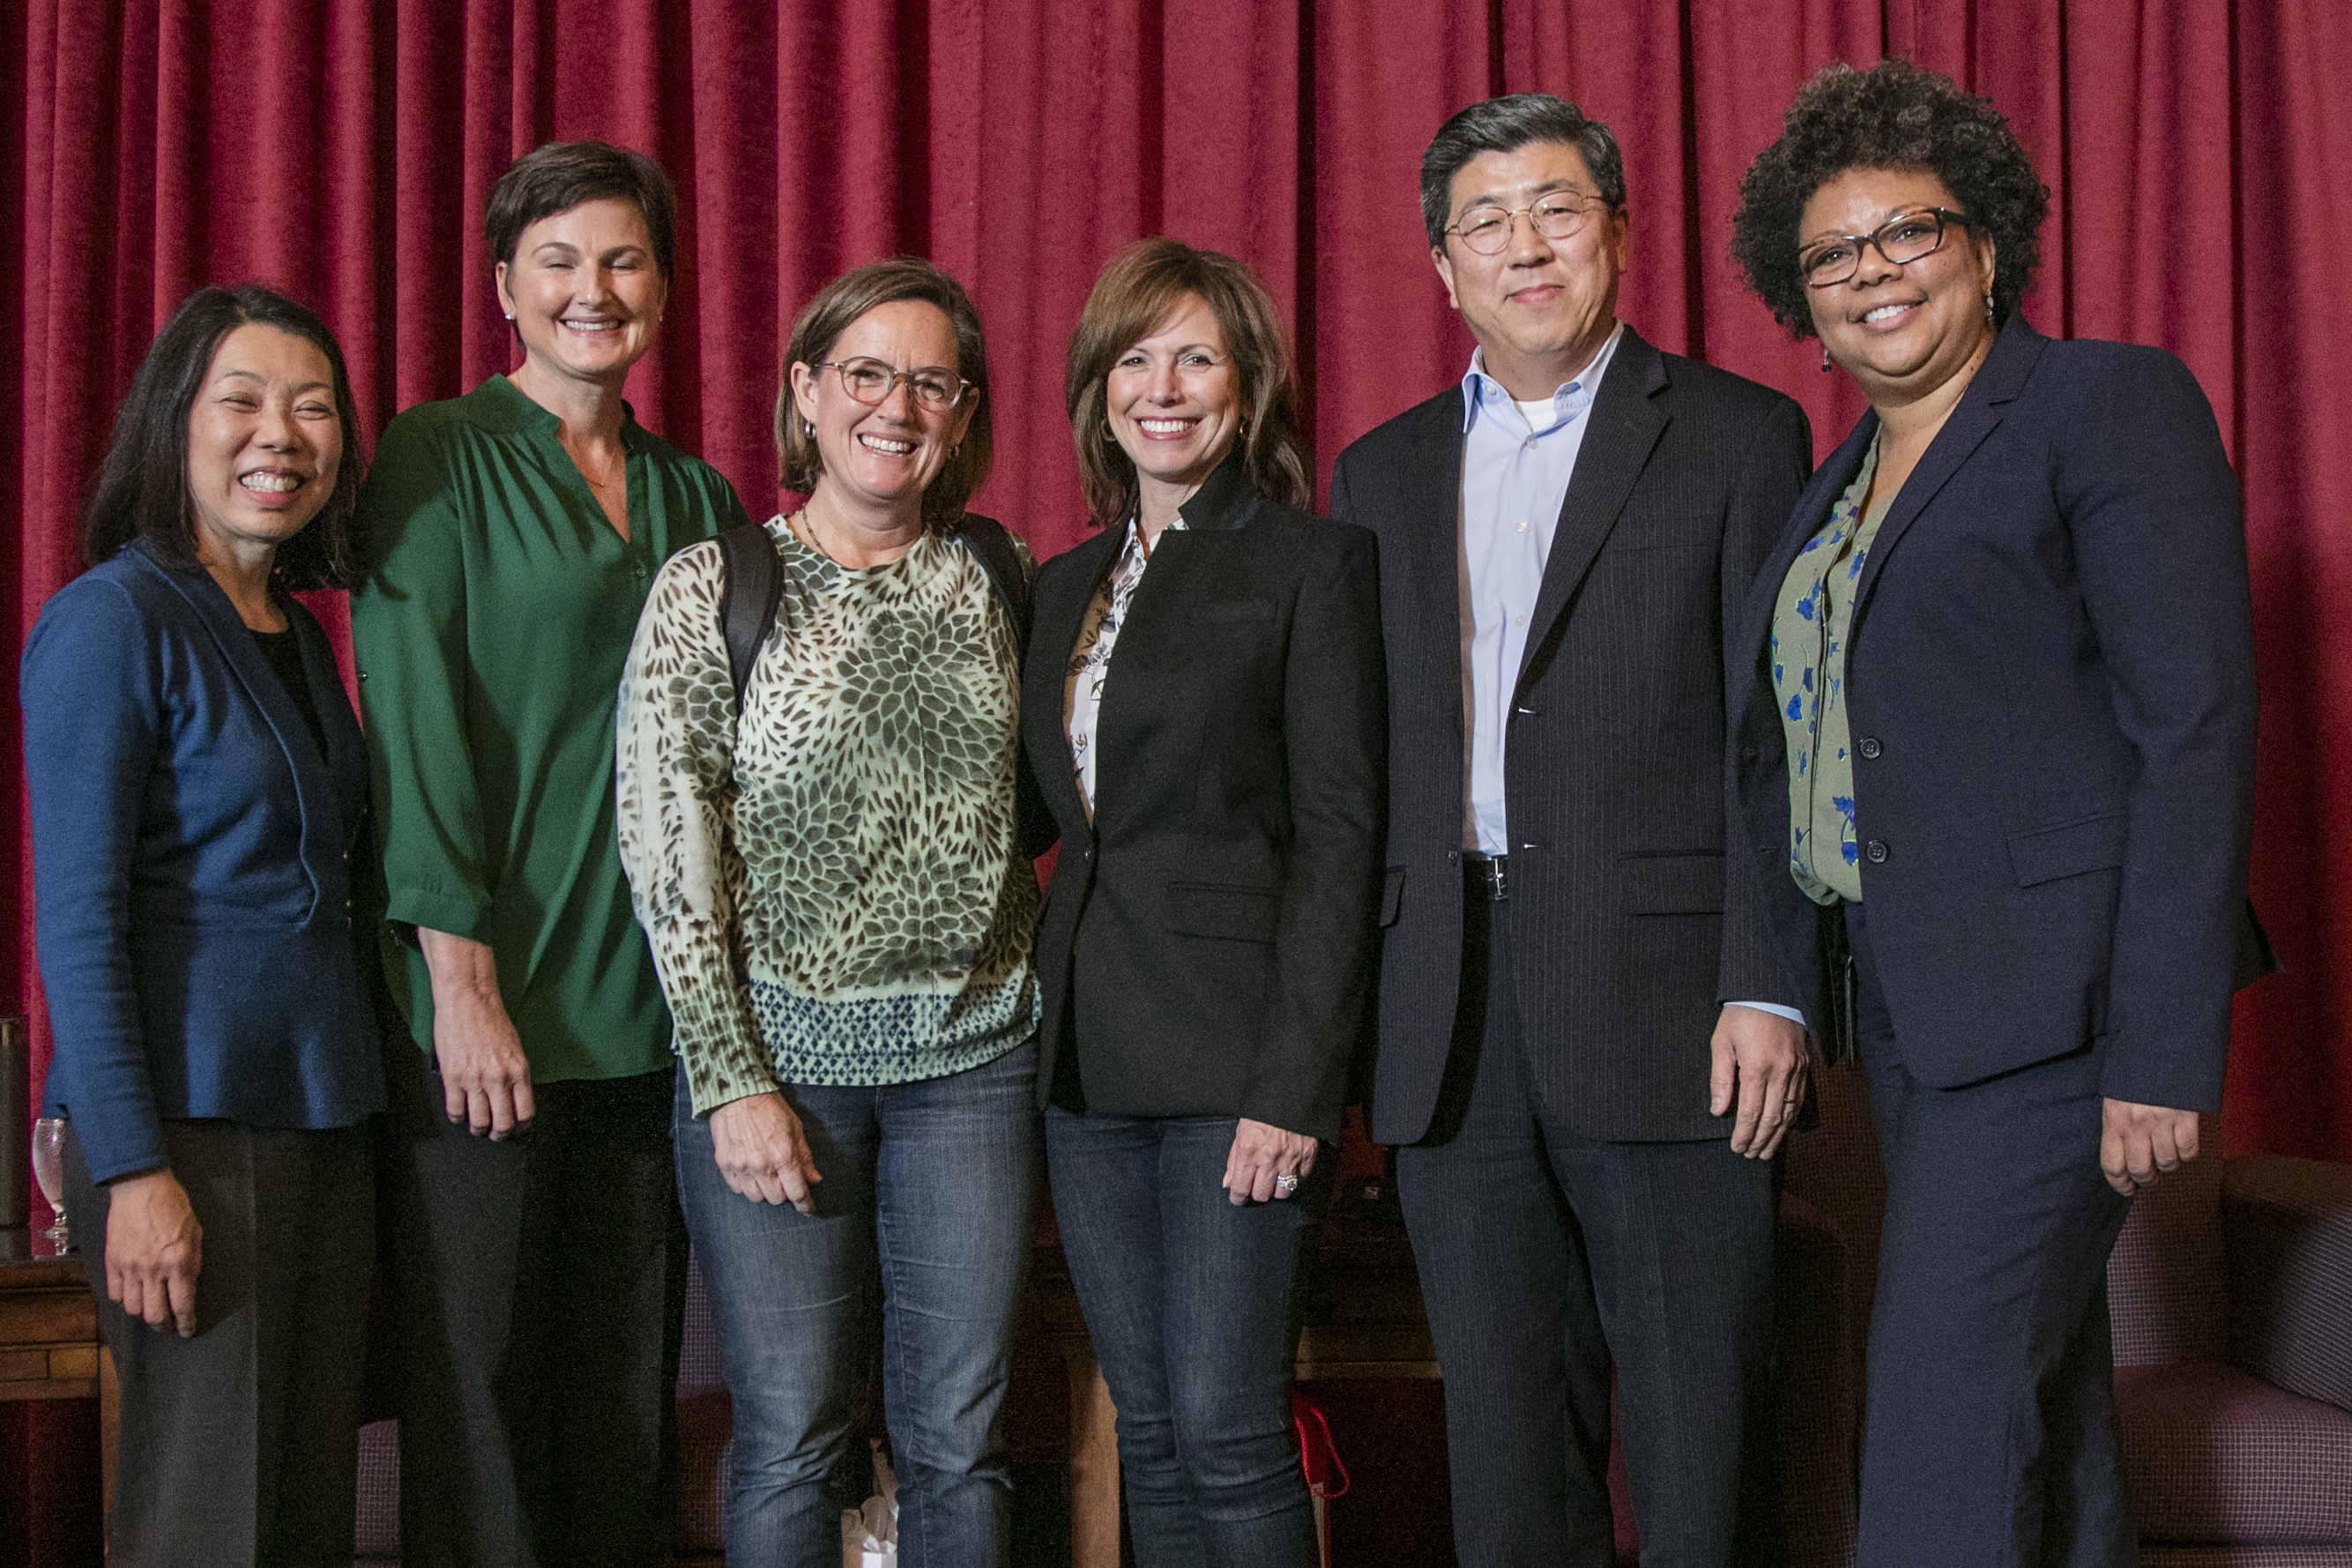 Left to right: Donna Uchida (panelist, chief of communications at Kaiser Permanente), Tiffin Groff (panelist, MBA '03, vice president of channel marketing for Peet's Coffee & Tea), Amy Vernetti (panelist from Google), Kris Snow (president of Cisco Systems Capital Corp. and SEBA Advisory Board member), Amy Vernetti '90 (panelist, director of leadership recruiting at Google), SEBA Dean Zhan Li, and Moire Rasmussen (moderator, diversity and inclusion leader at PricewaterhouseCoopers).